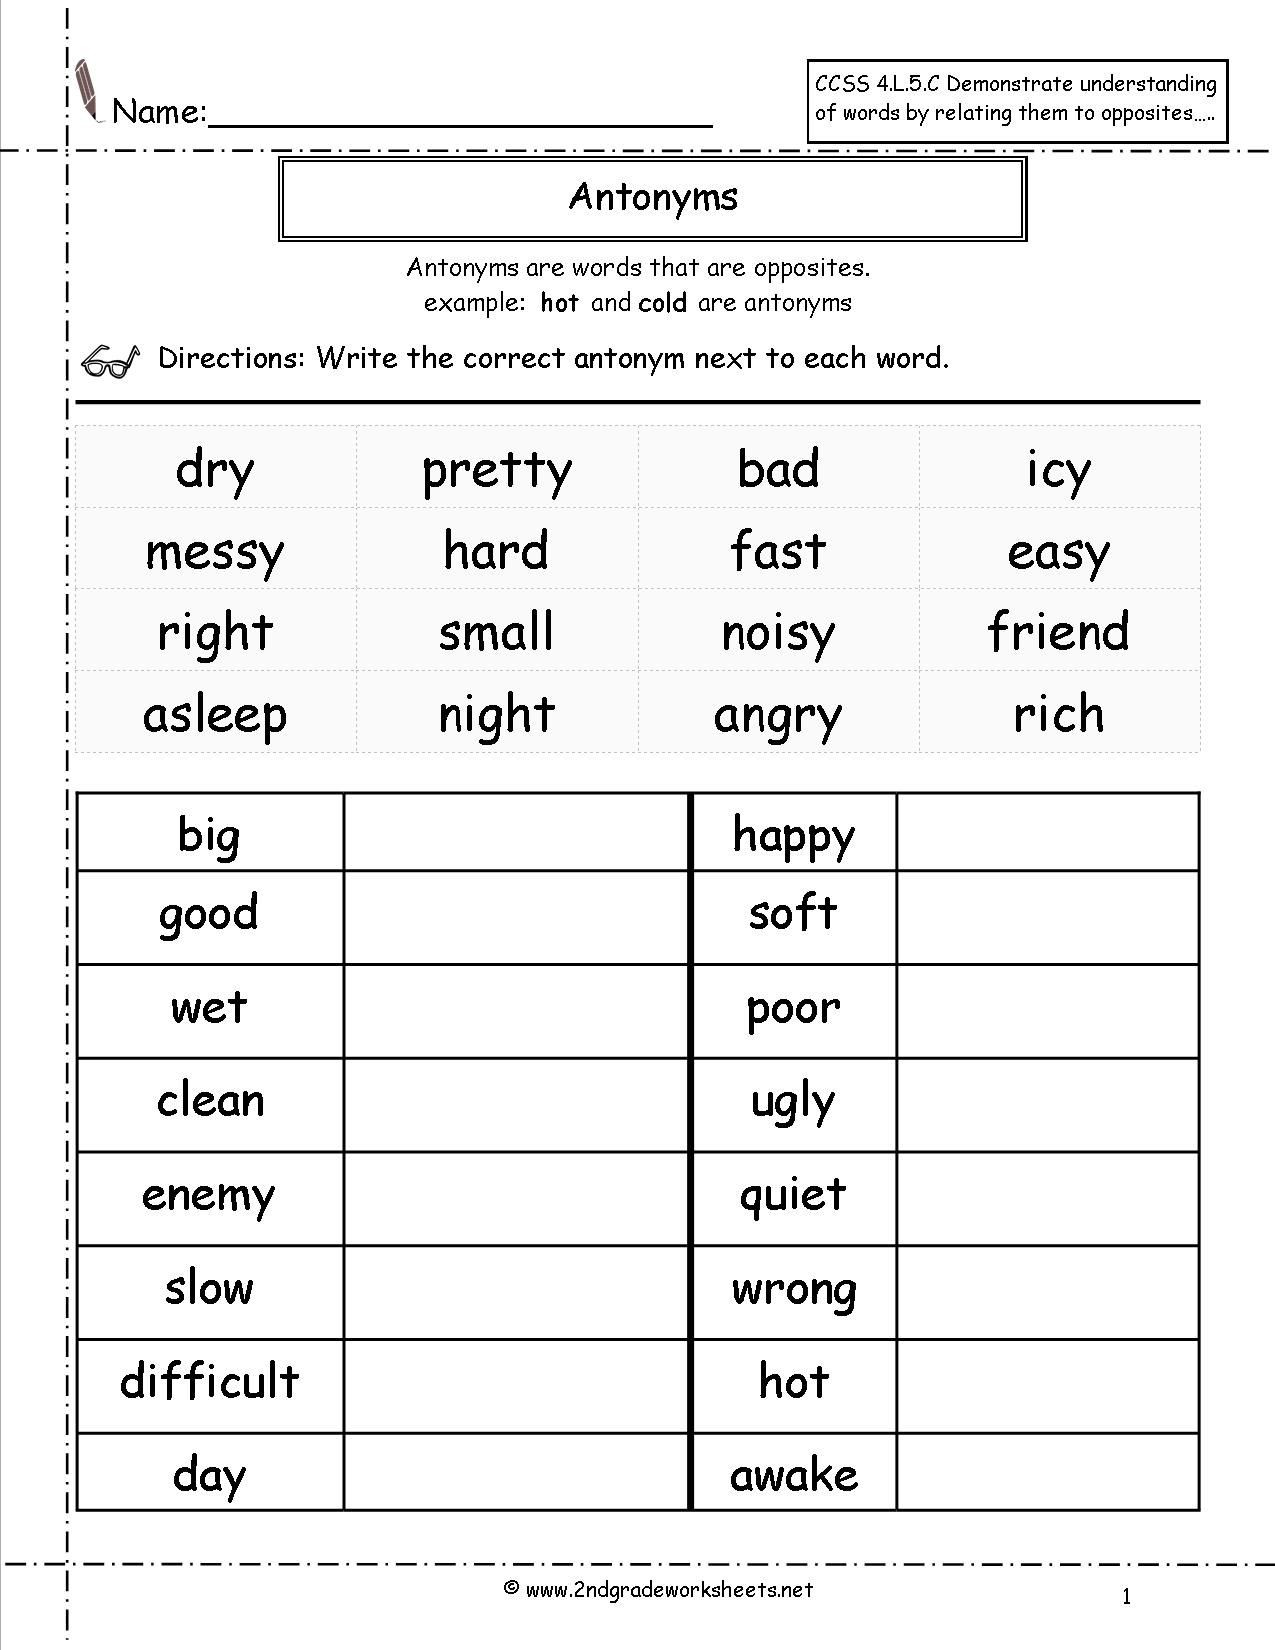 Antonyms Worksheets 3rd Grade Antonyms Worksheet